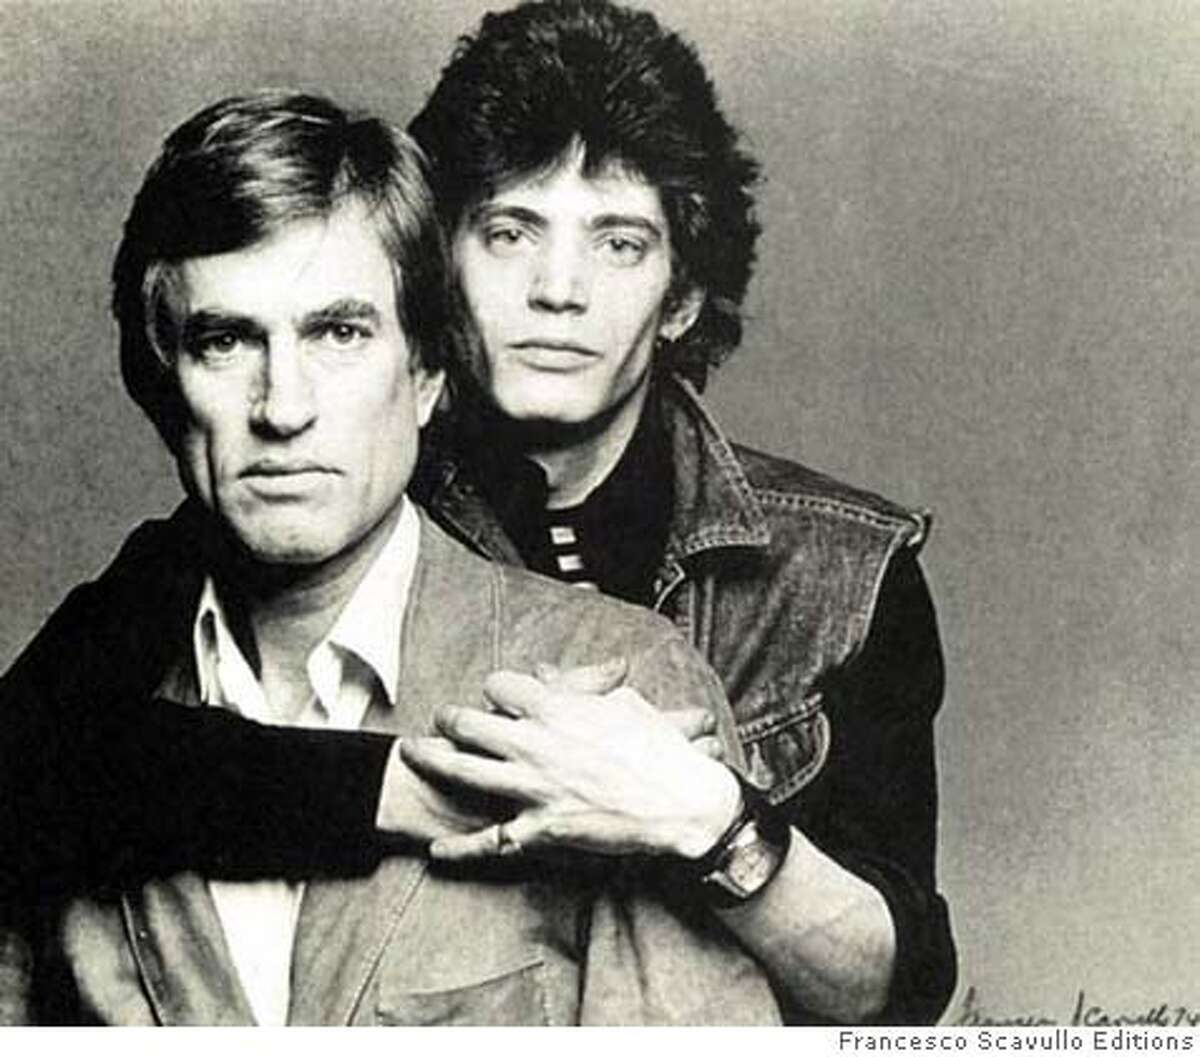 Black White Gray: A Portrait Of Sam Wagstaff And Robert Mapplethorpe. CR: Francesco Scavullo Editions Ran on: 02-01-2008 Sam Wagstaff (left) was a collector who championed, and left his fortune to, Robert Mapplethorpe.